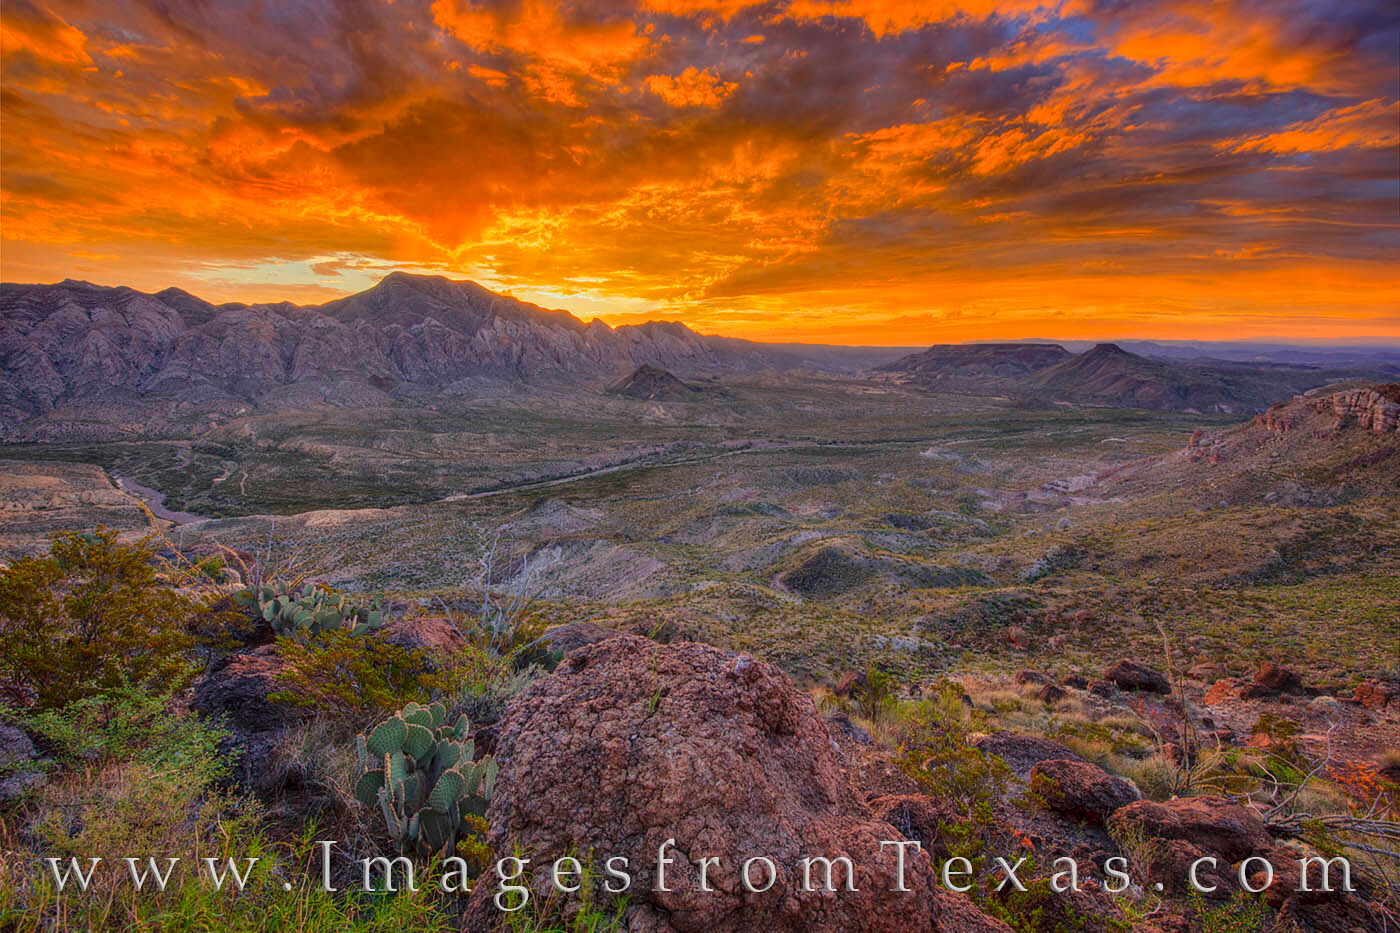 fresno canyon, solitario, big bend ranch, state park, cacti, sunrise, morning, canyon, west texas, chihuahuan desert, laccolith, uplift, hiking texas, photo